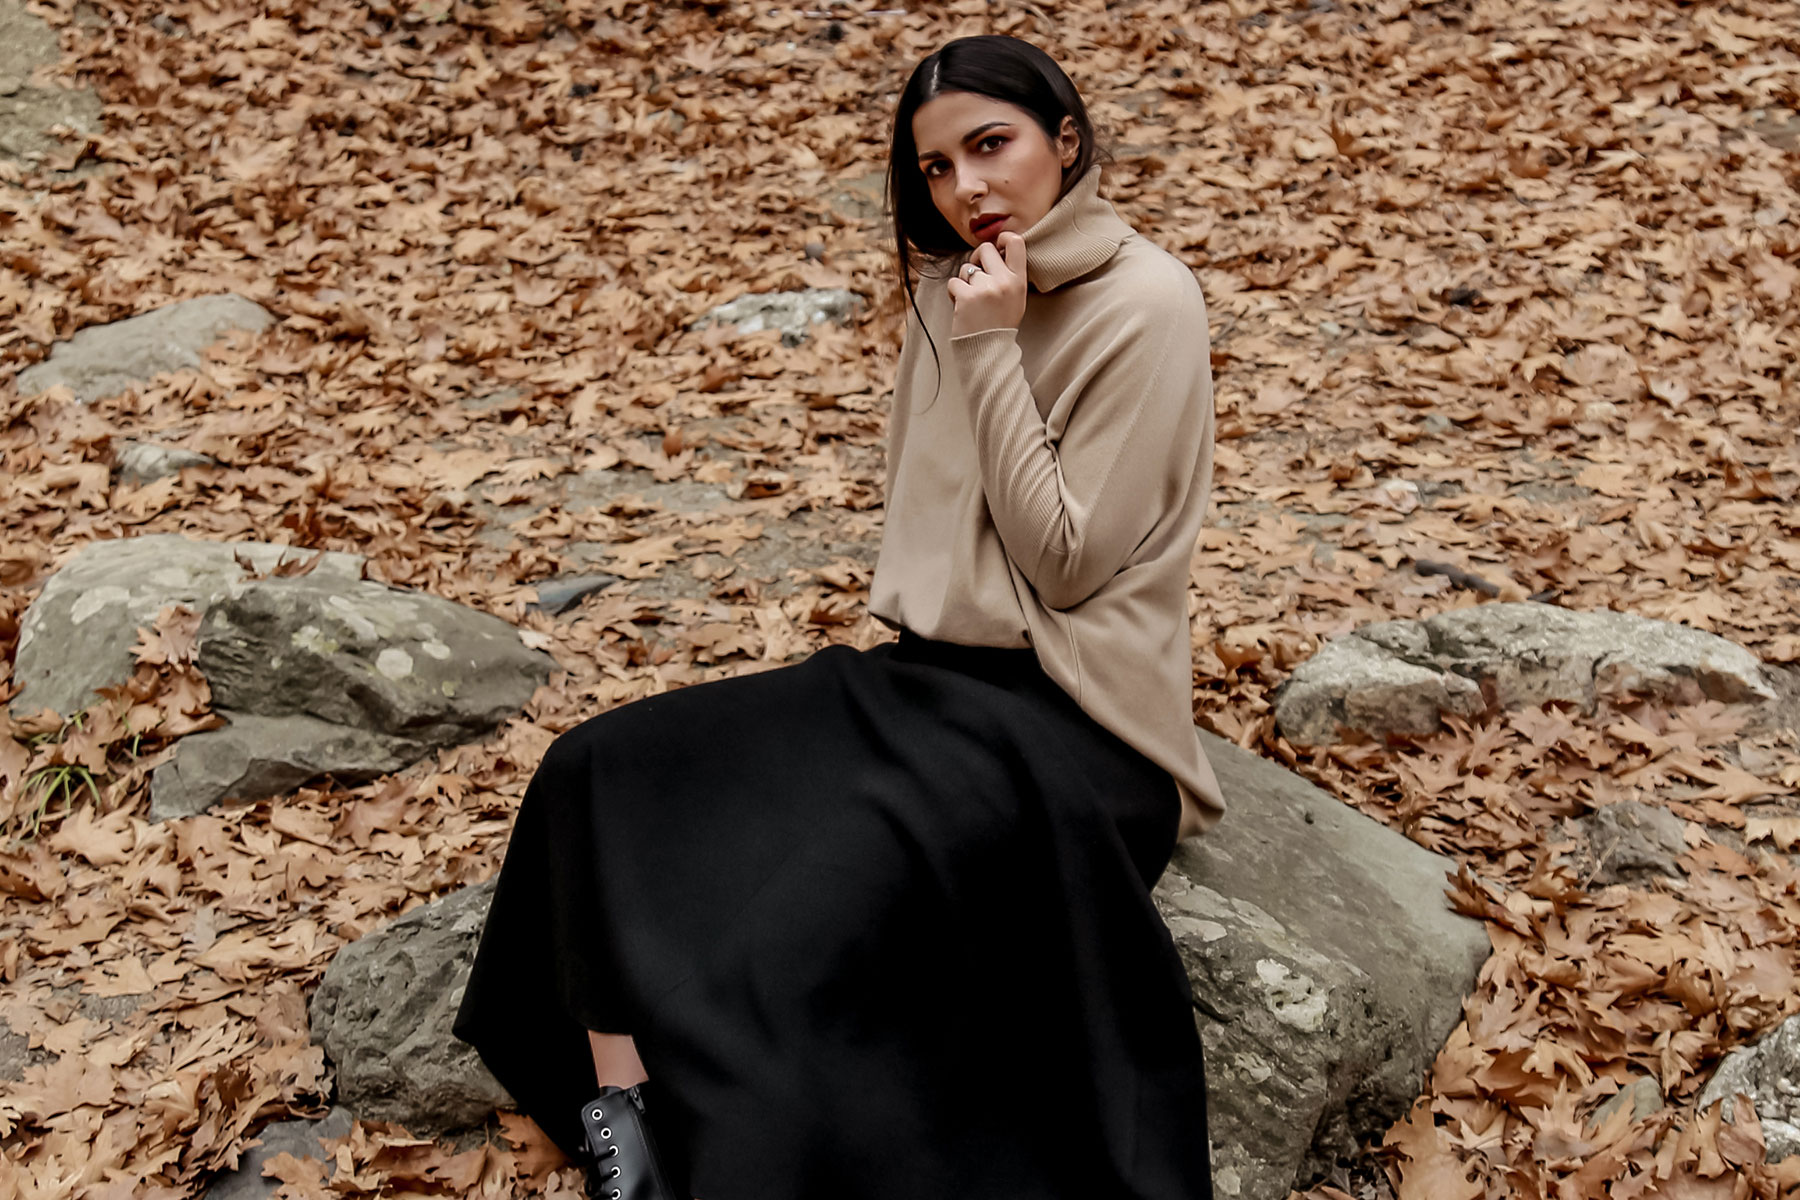 fall wardrobe staples by Stella Asteria - wearing turtleneck sweater with knit skirt and Dr Martens boots